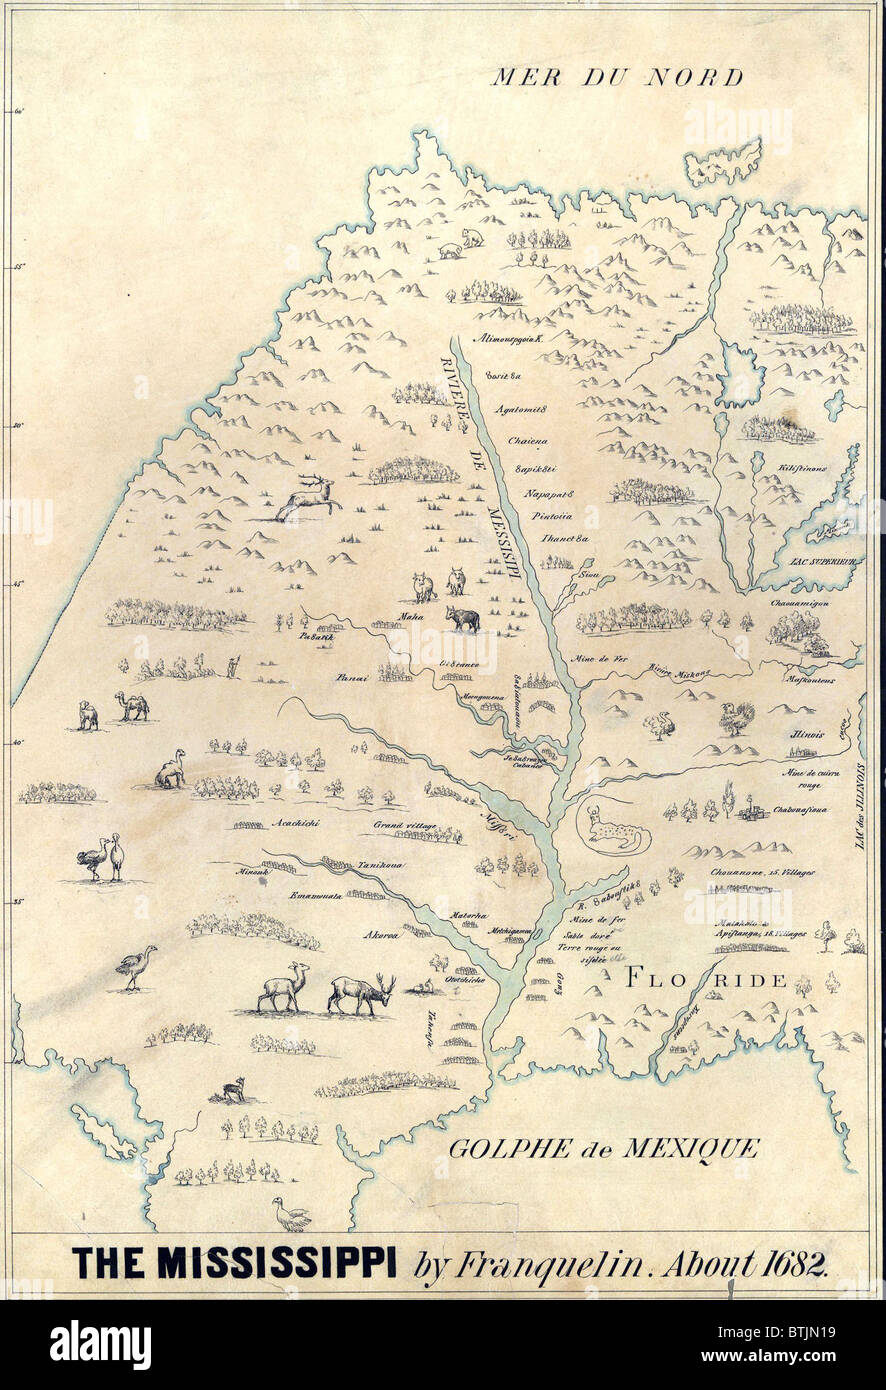 1682 french map of the mississippi river and region showing locations of native american settlements